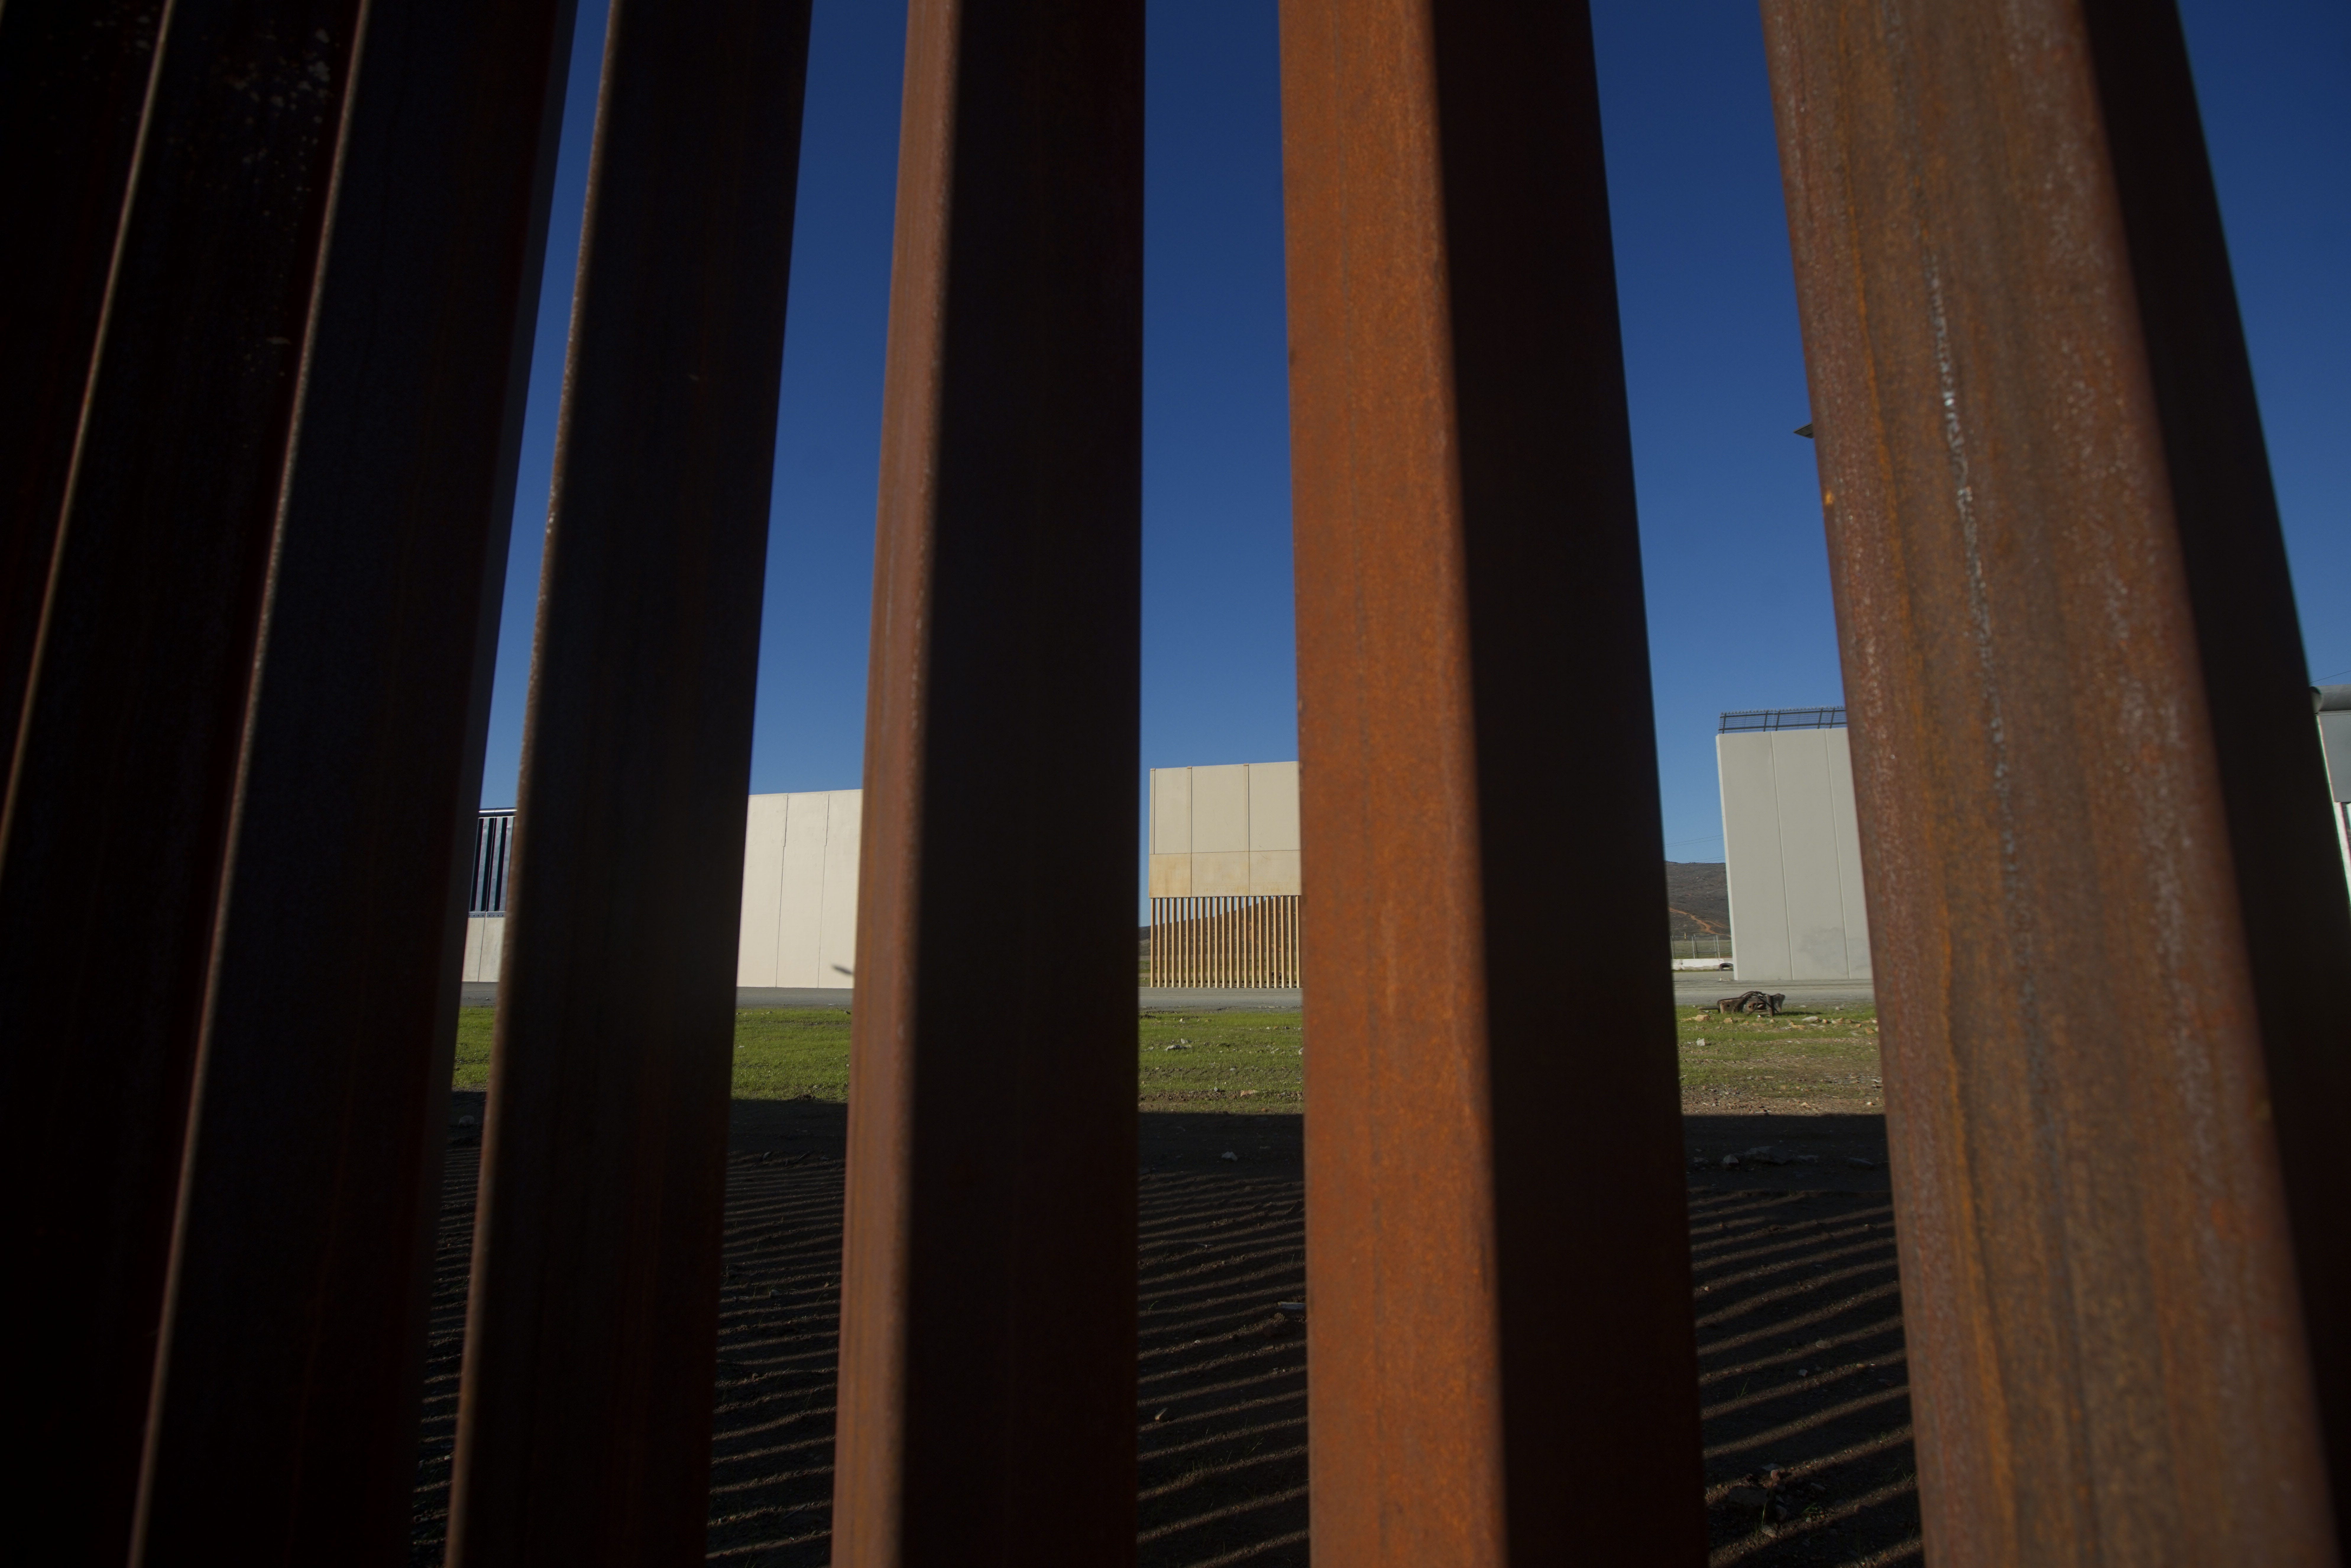 $20 million donated to viral border wall GoFundMe set to be refunded